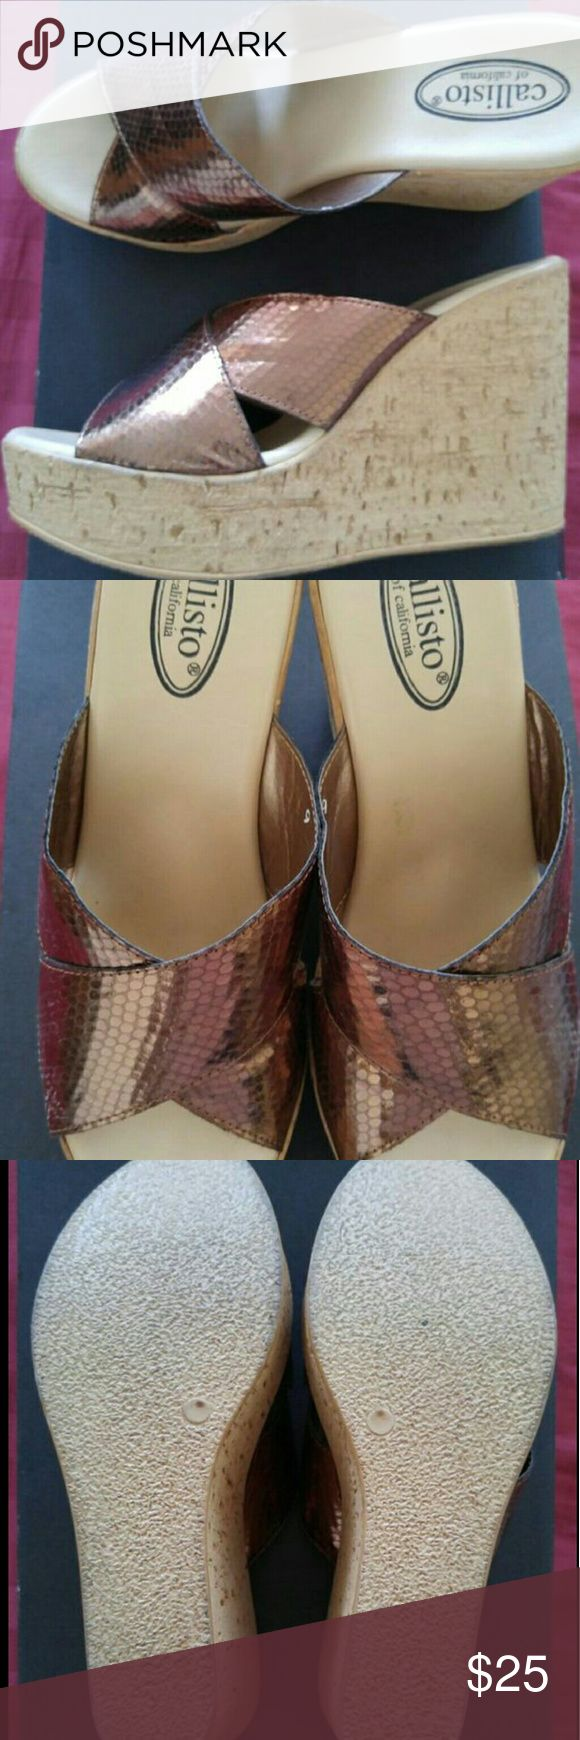 Callisto Wedges, worn once Super cute with jeans, with original box Callisto Shoes Wedges